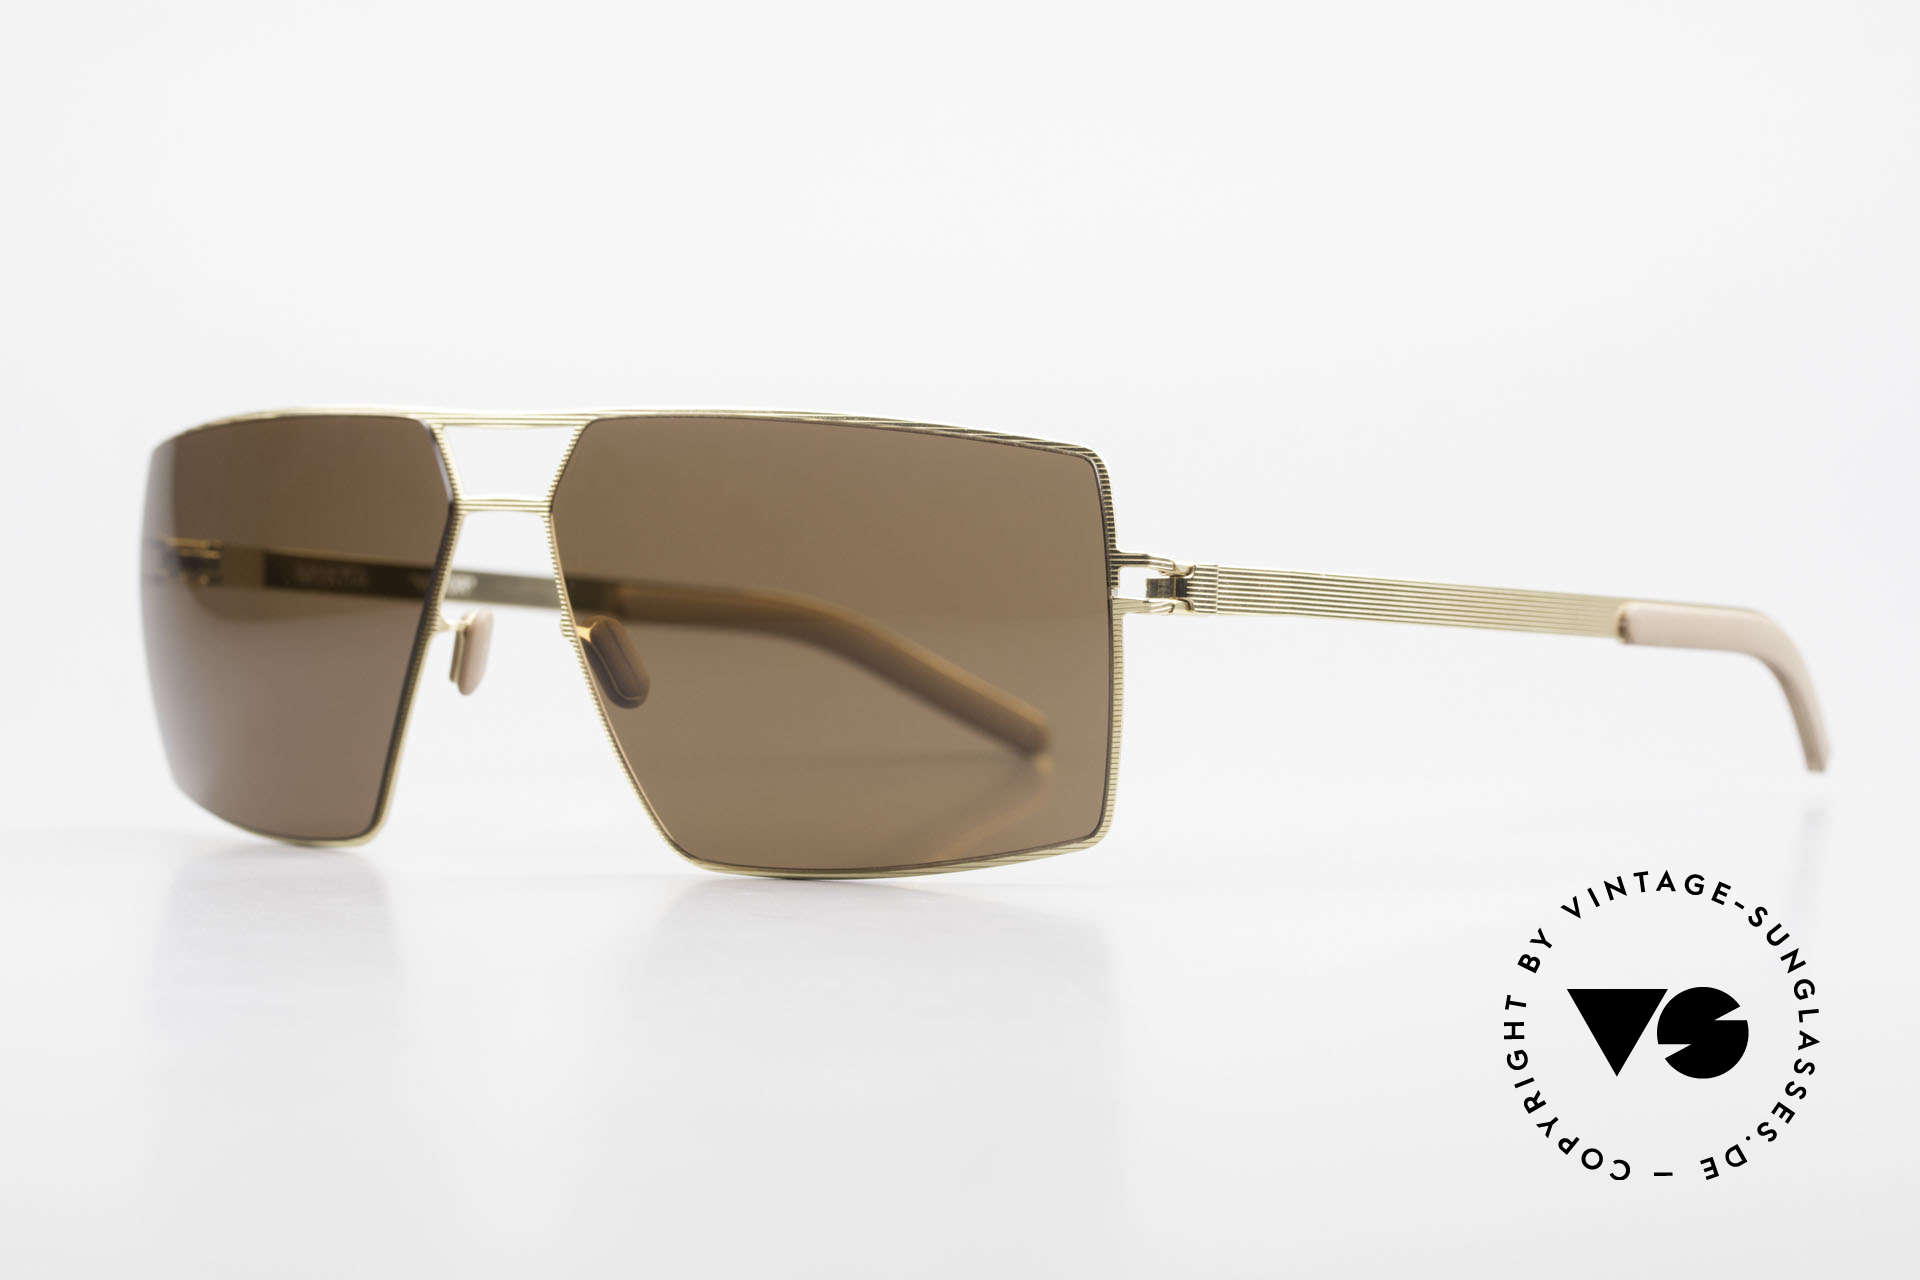 Mykita Viktor Square Designer Sunglasses, VIKTOR Goldline, brown-solid lenses, in LARGE size!, Made for Men